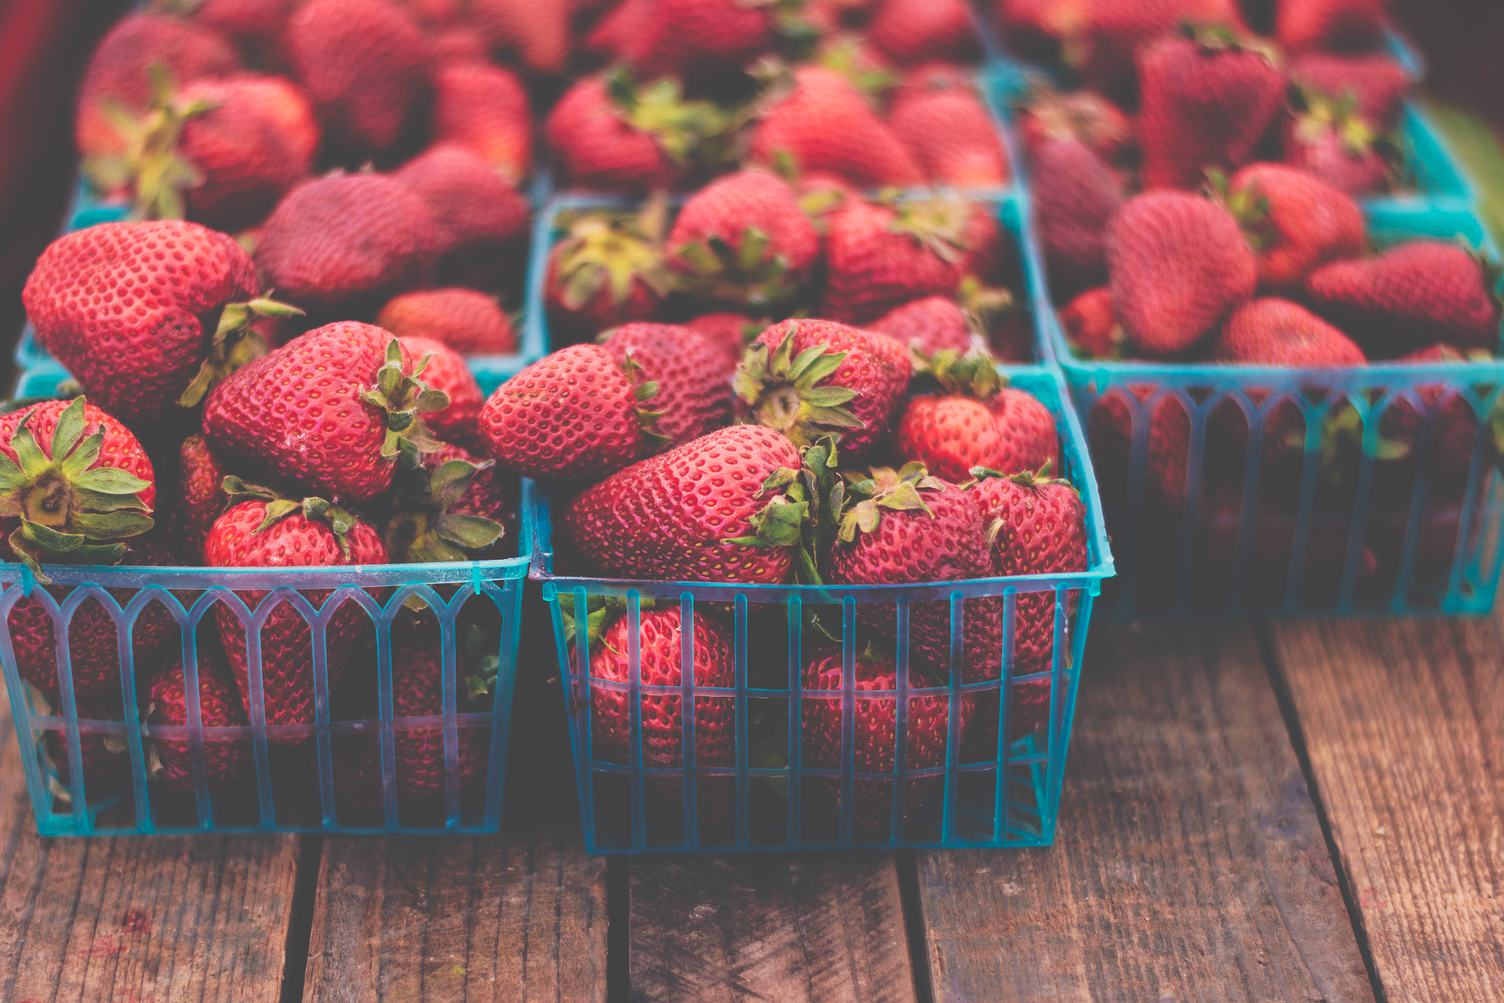 Fresh Strawberries in Boxes on Wooden Table